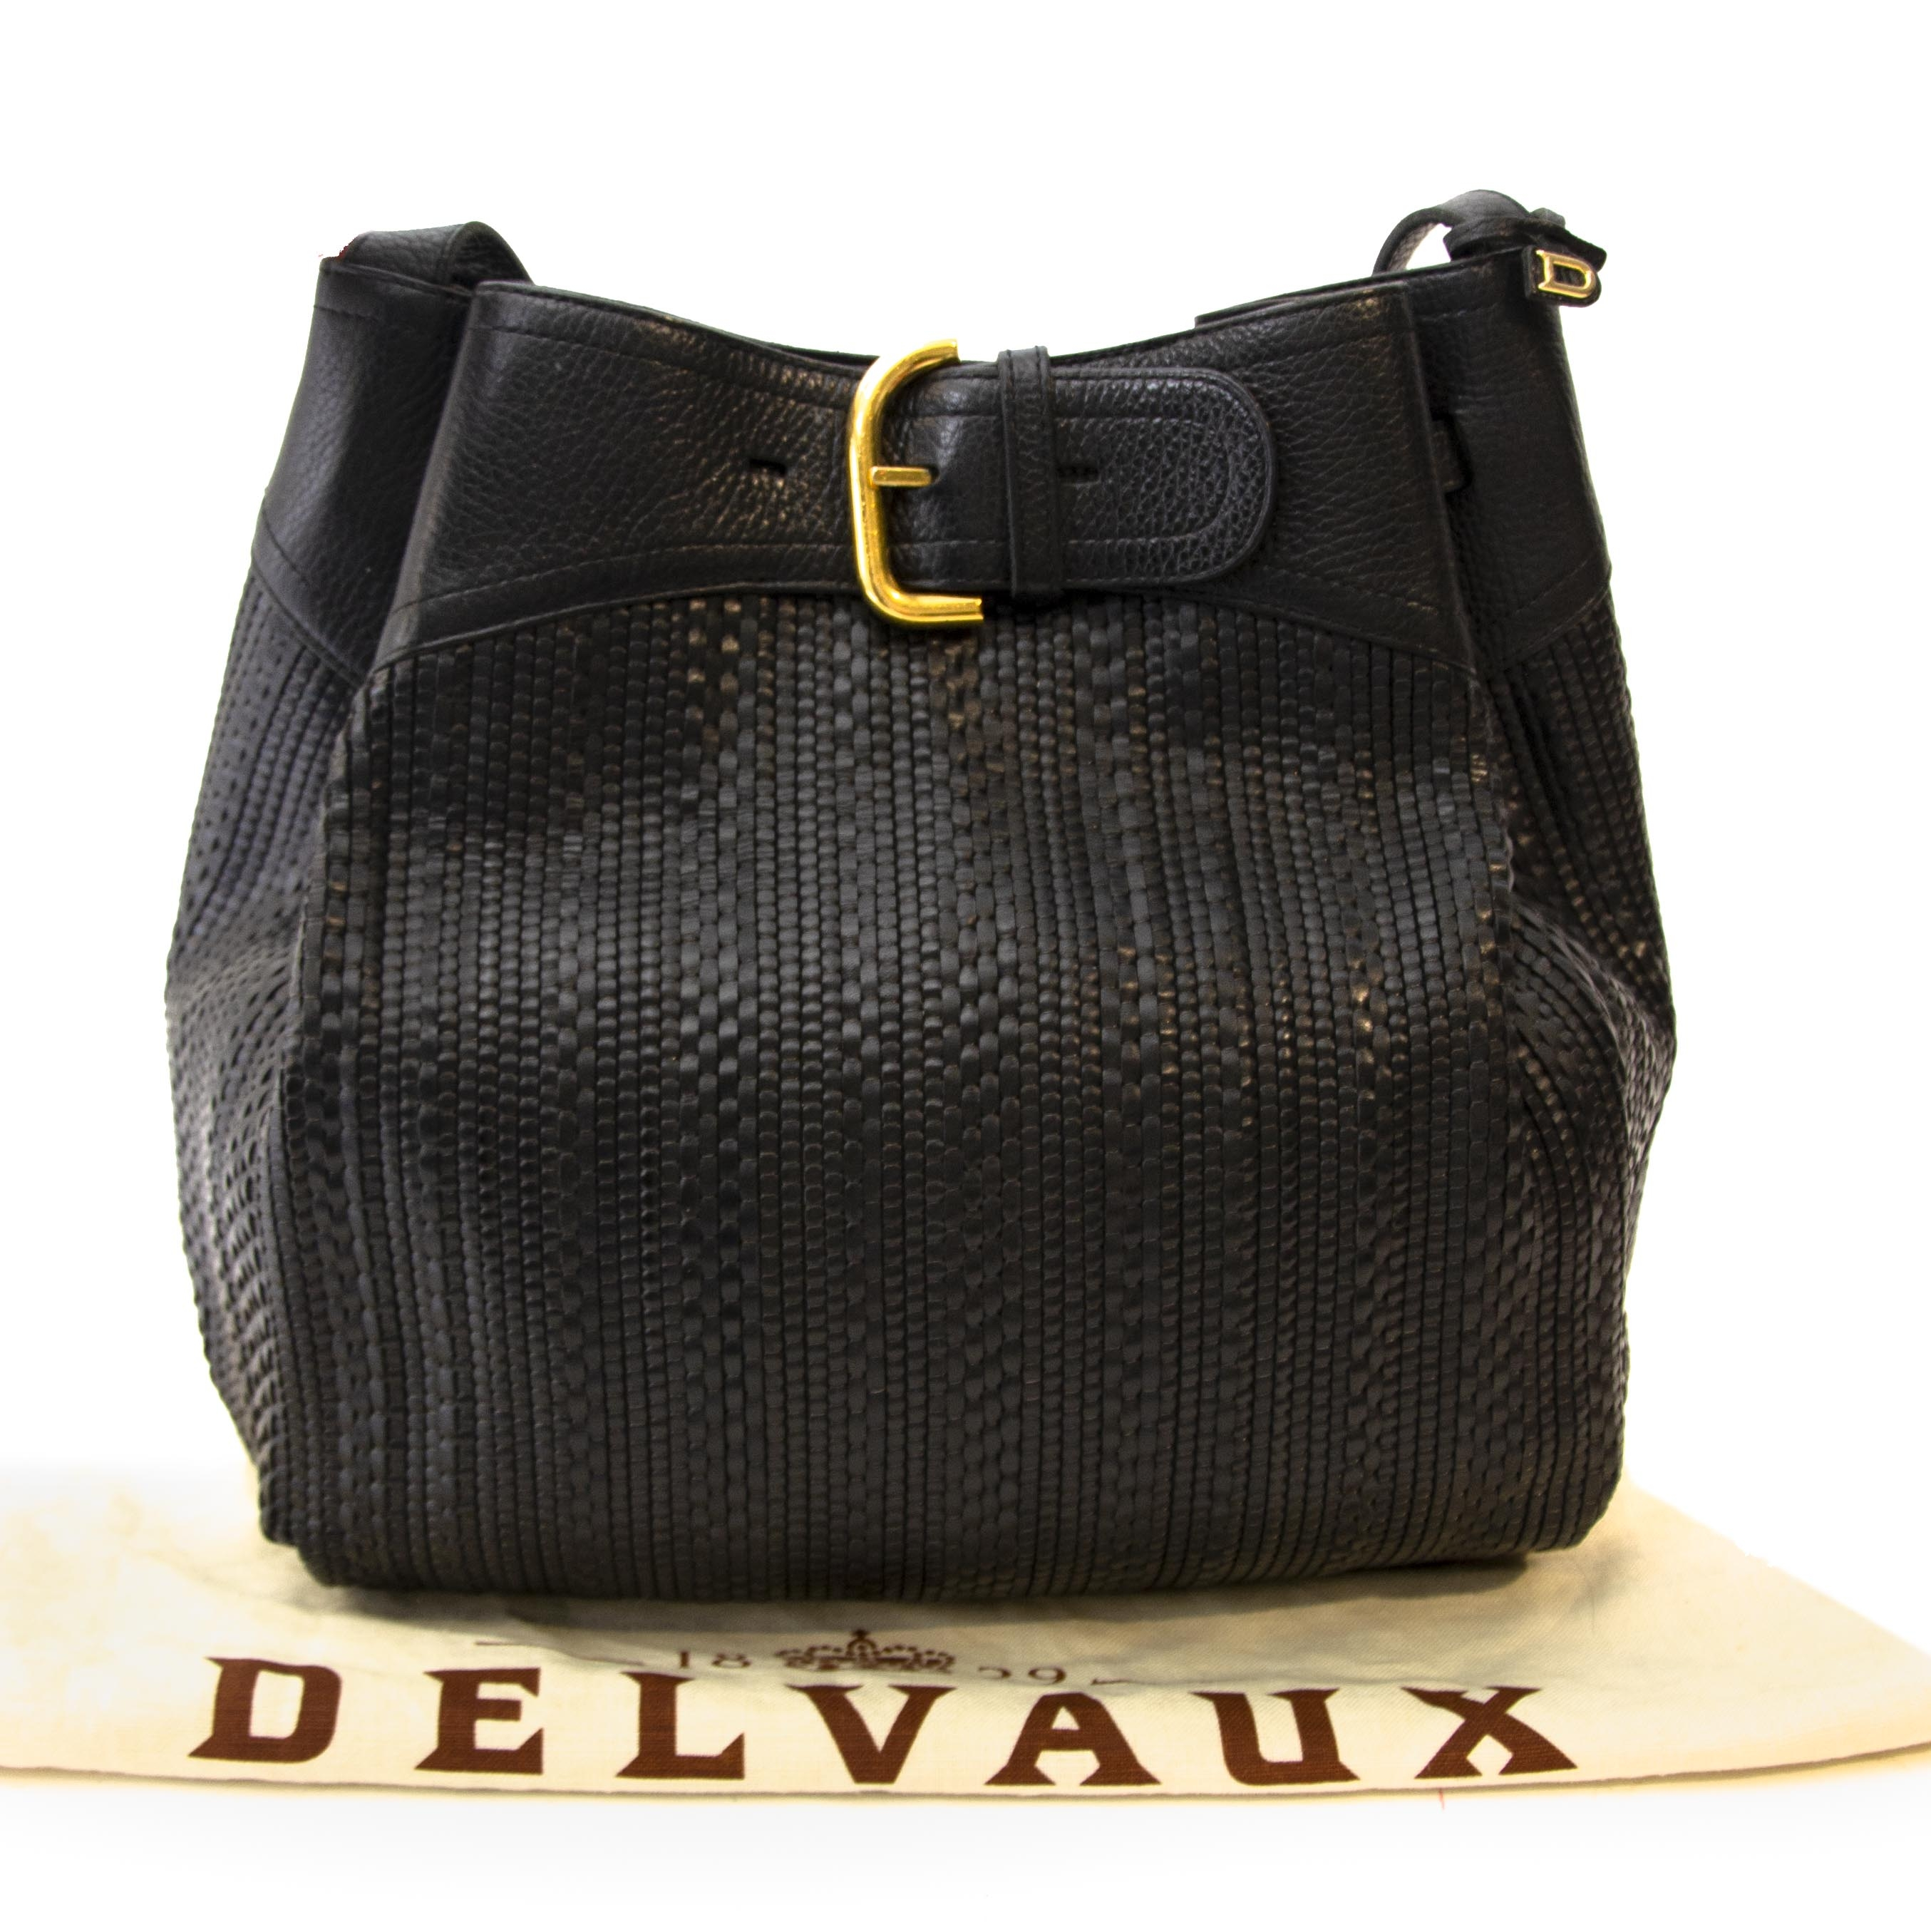 Vintage Delvaux Toile de cuir bag at Labellov. Webshop with designer handbags